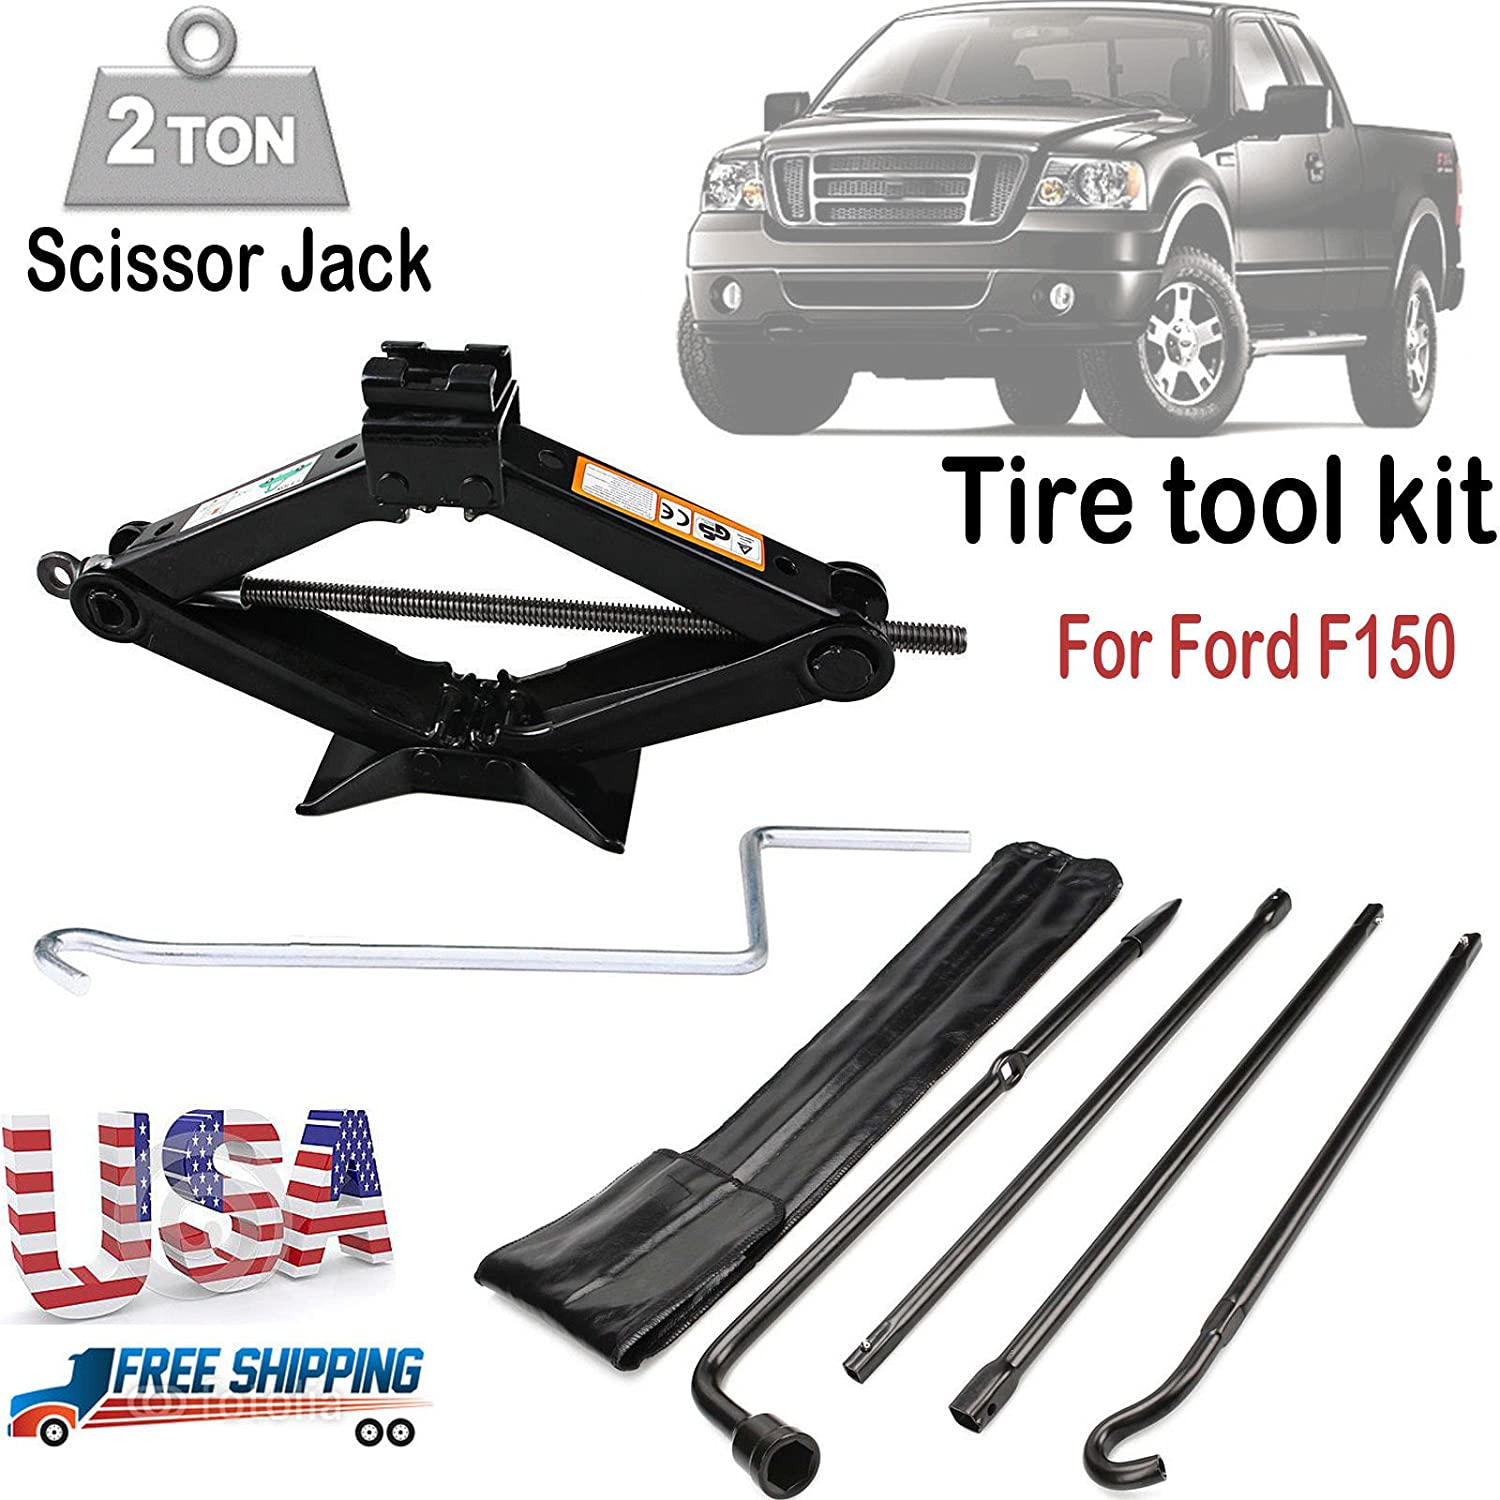 Spare Tire Tool Kit and 2 Ton Scissor Jack For Ford F150 2004 to 2014 OEM Exension Nut Lug Wheel Wrench Repair Replacement Iron Set Autofu